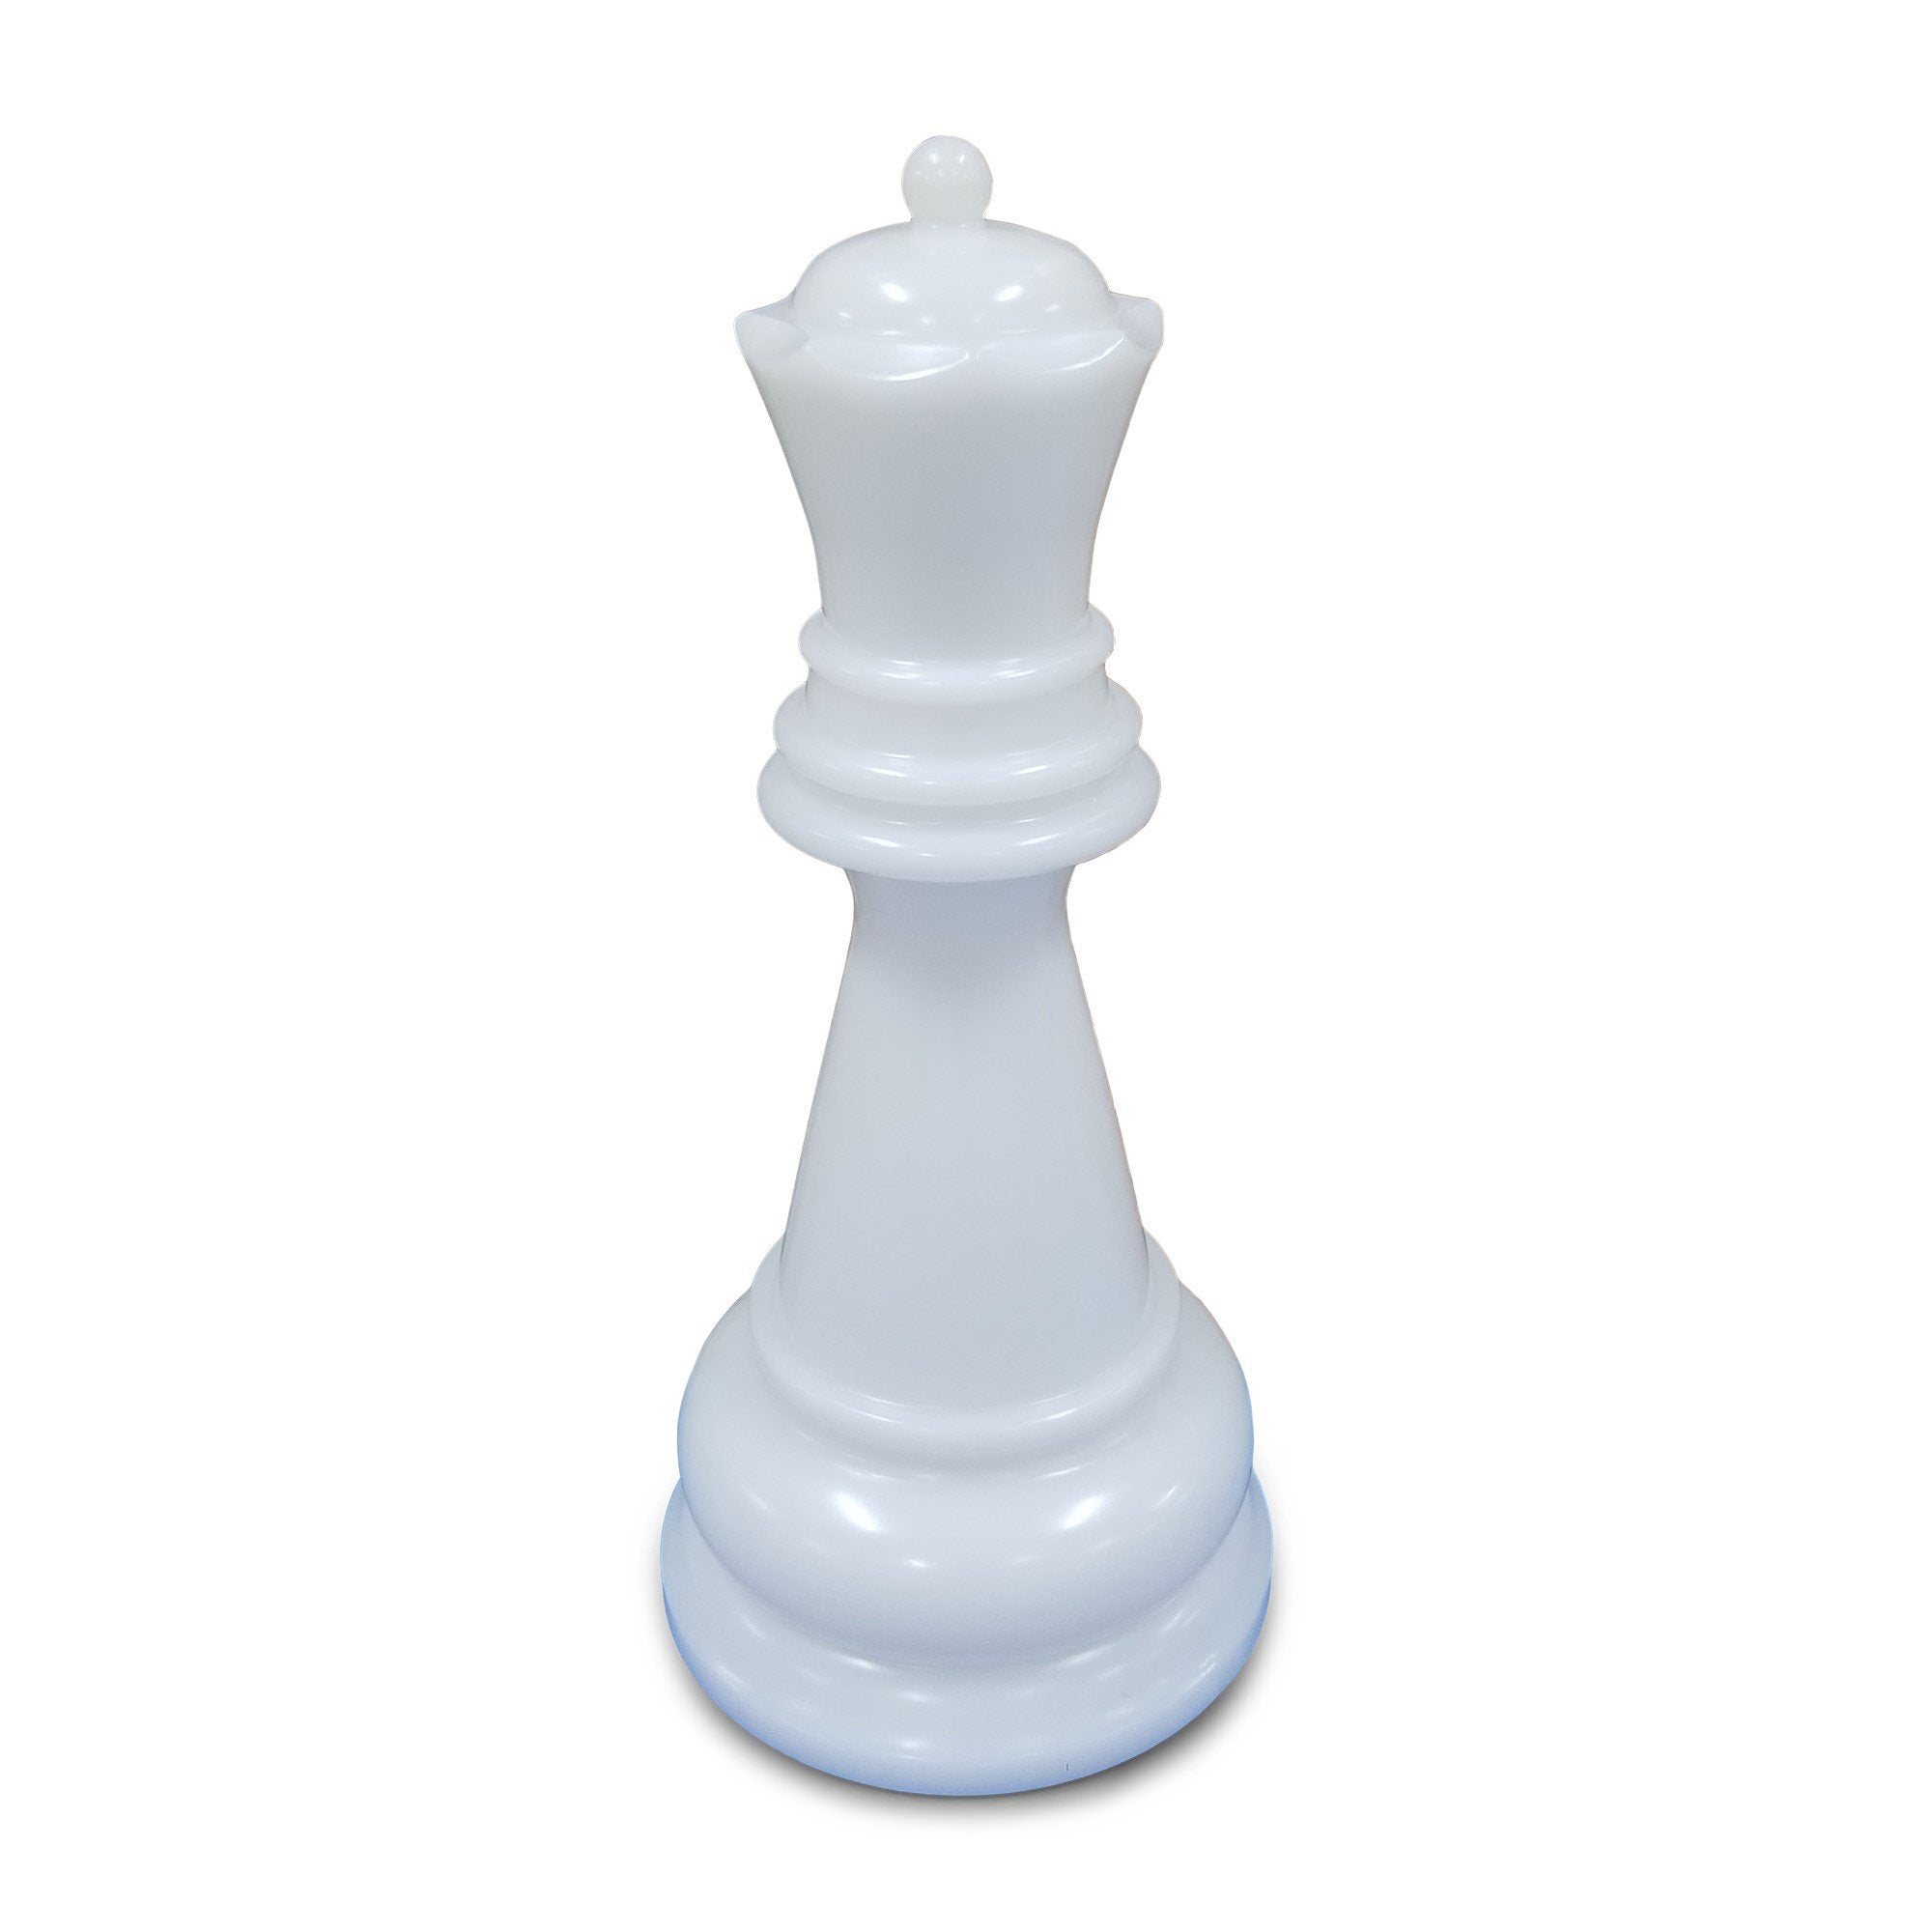 MegaChess 36 Inch White Perfect Queen Giant Chess Piece | Default Title | MegaChess.com